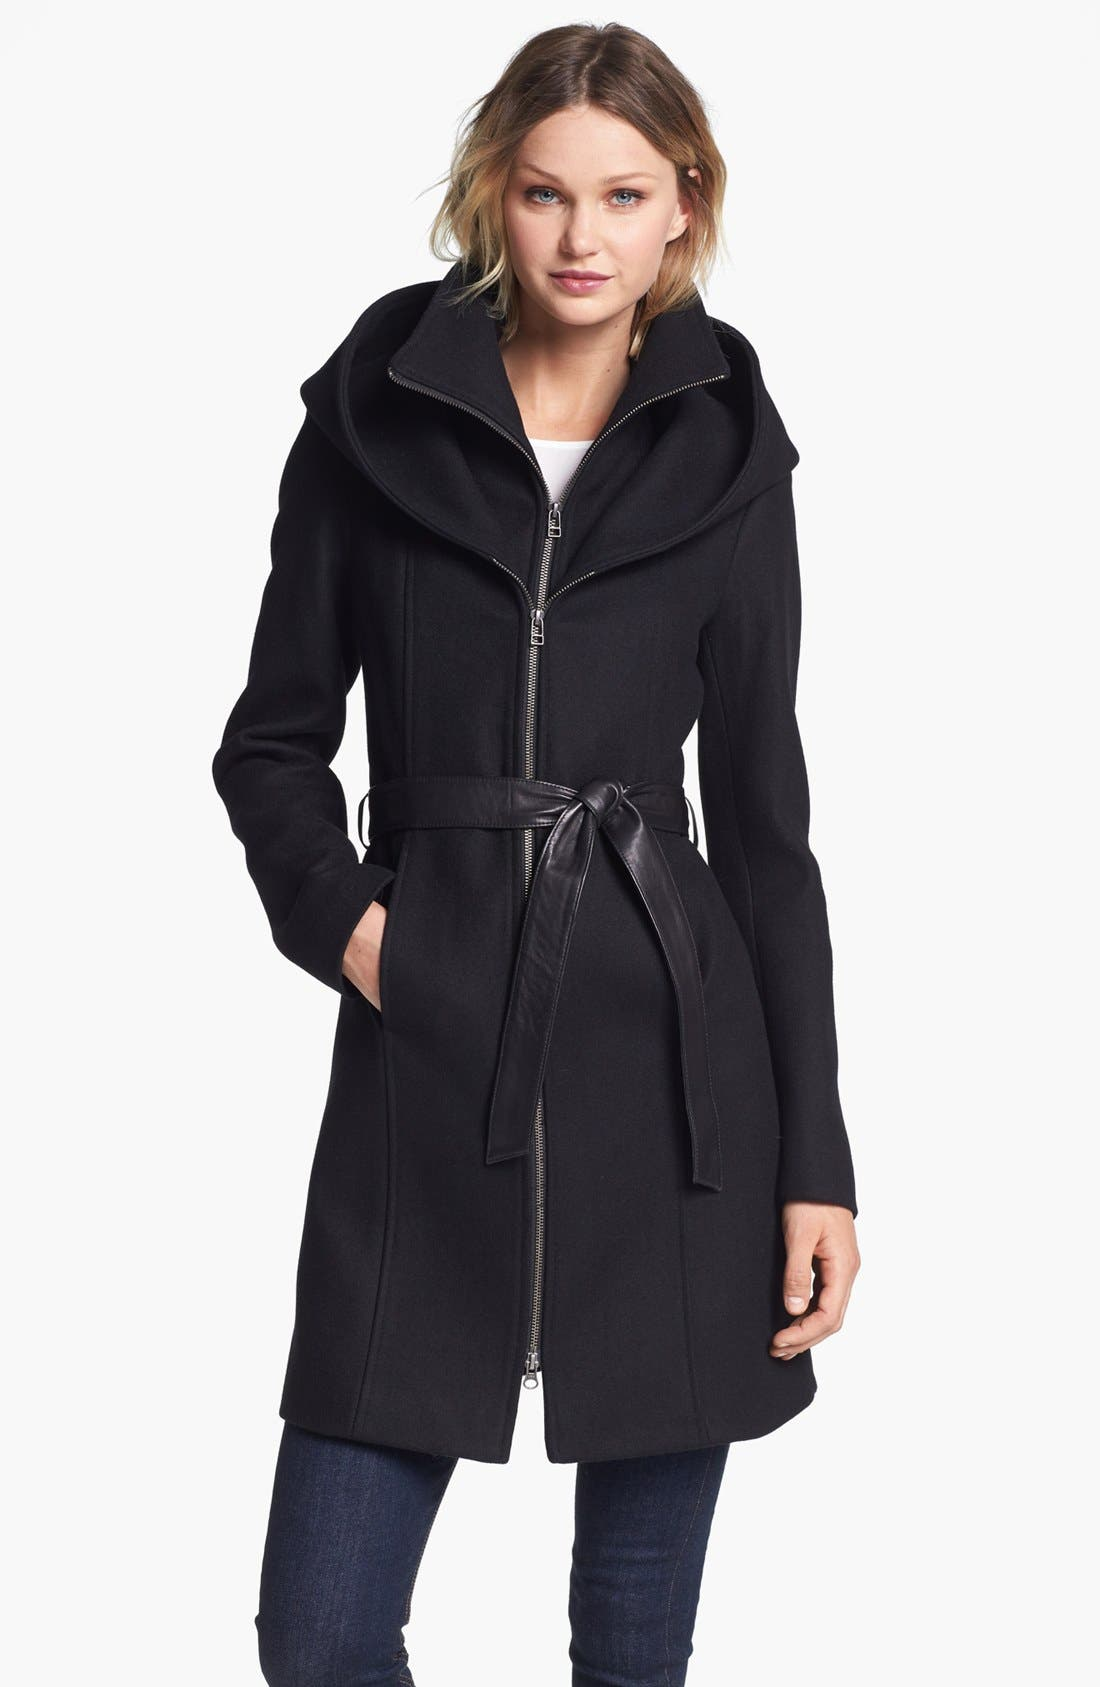 Alternate Image 1 Selected - Soia & Kyo Hooded Wool Blend Coat with Leather Belt